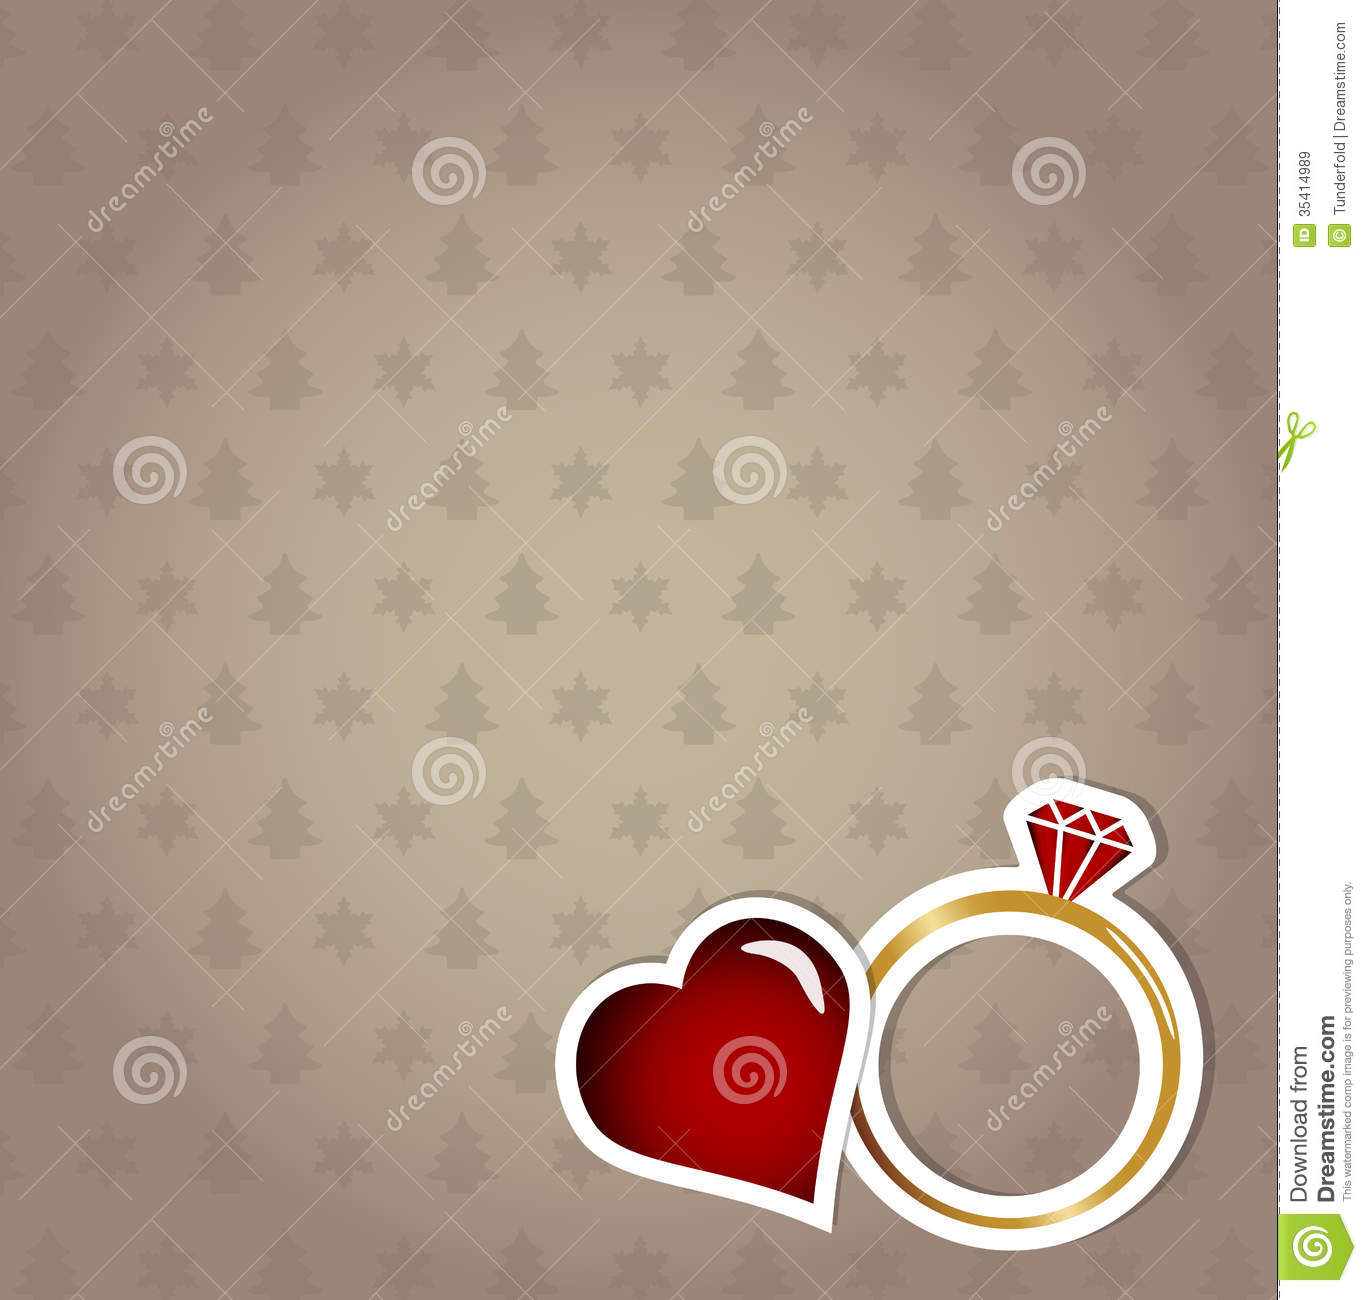 Engagement Card  Christmas Concept Royalty Free Stock Images  Image 35414989